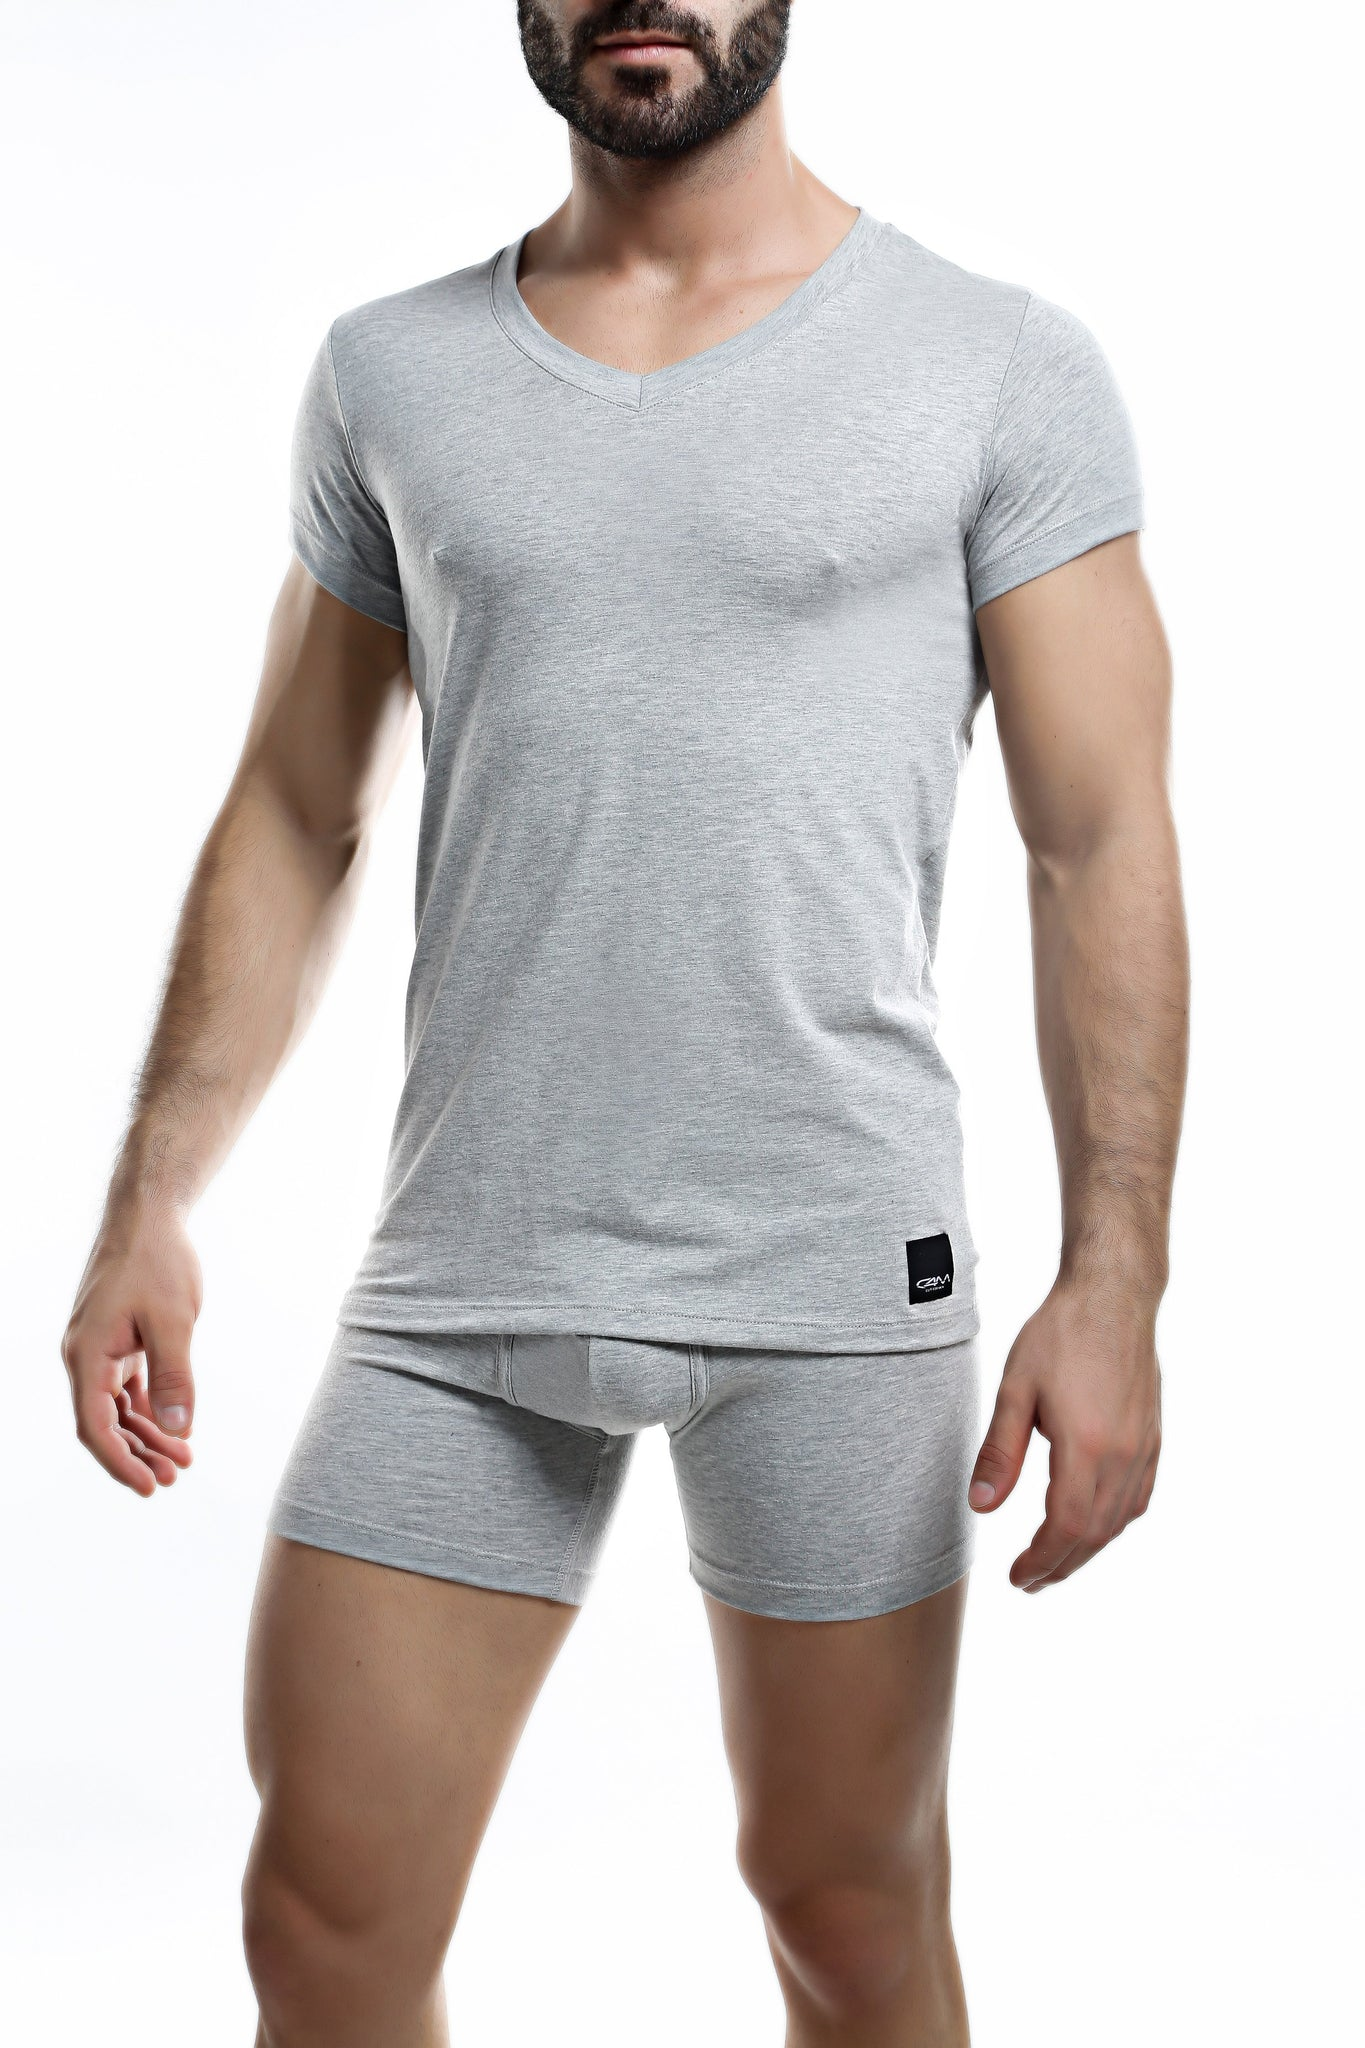 C4M Grey V Neck Shirt